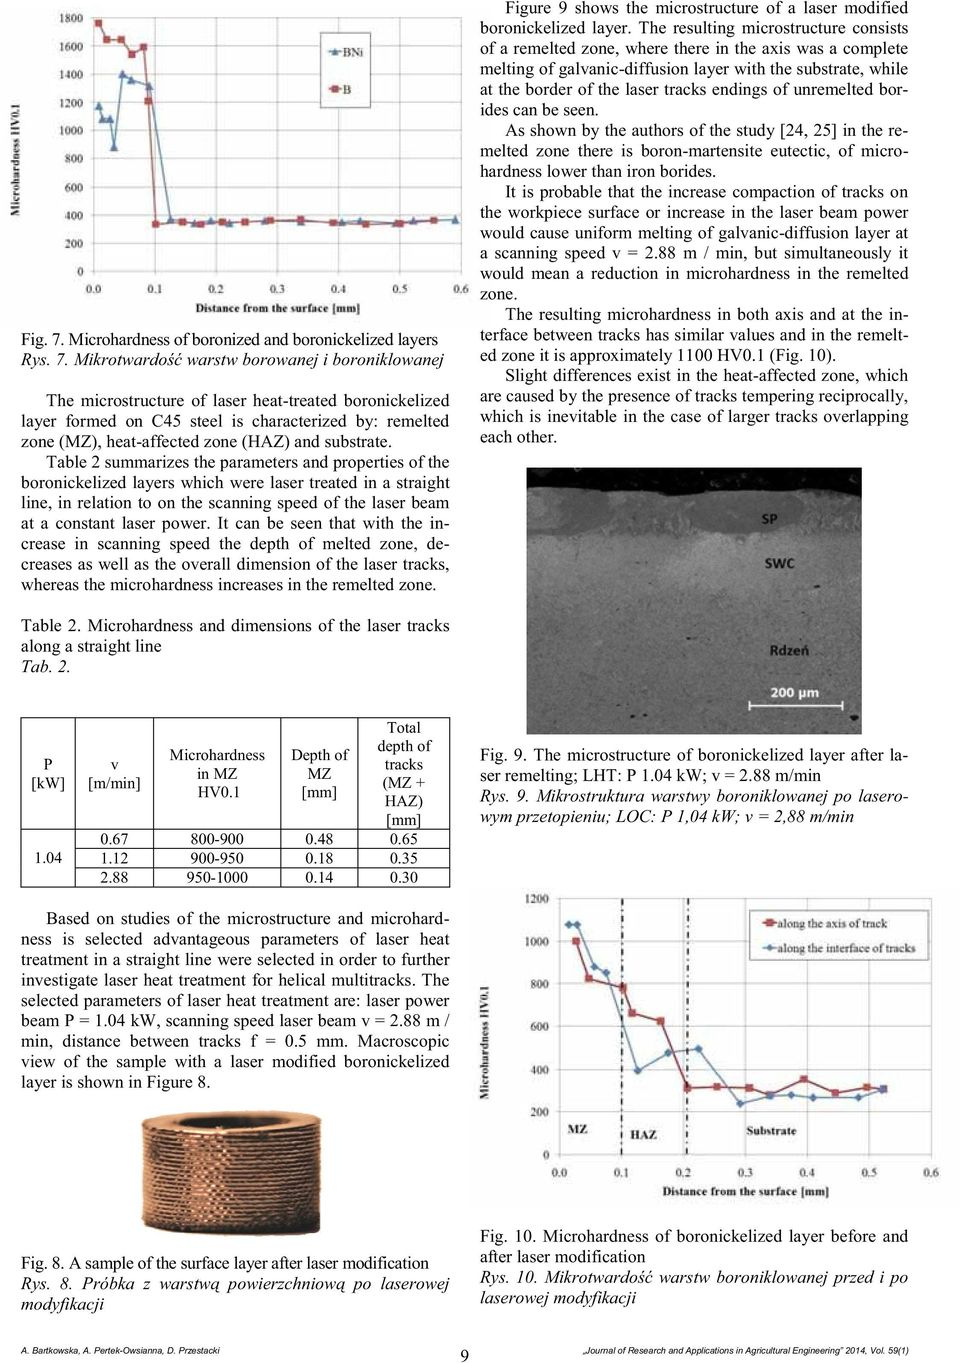 Mikrotwardo warstw borowanej i boroniklowanej The microstructure of laser heat-treated boronickelized layer formed on C45 steel is characterized by: remelted zone (MZ), heat-affected zone (HAZ) and